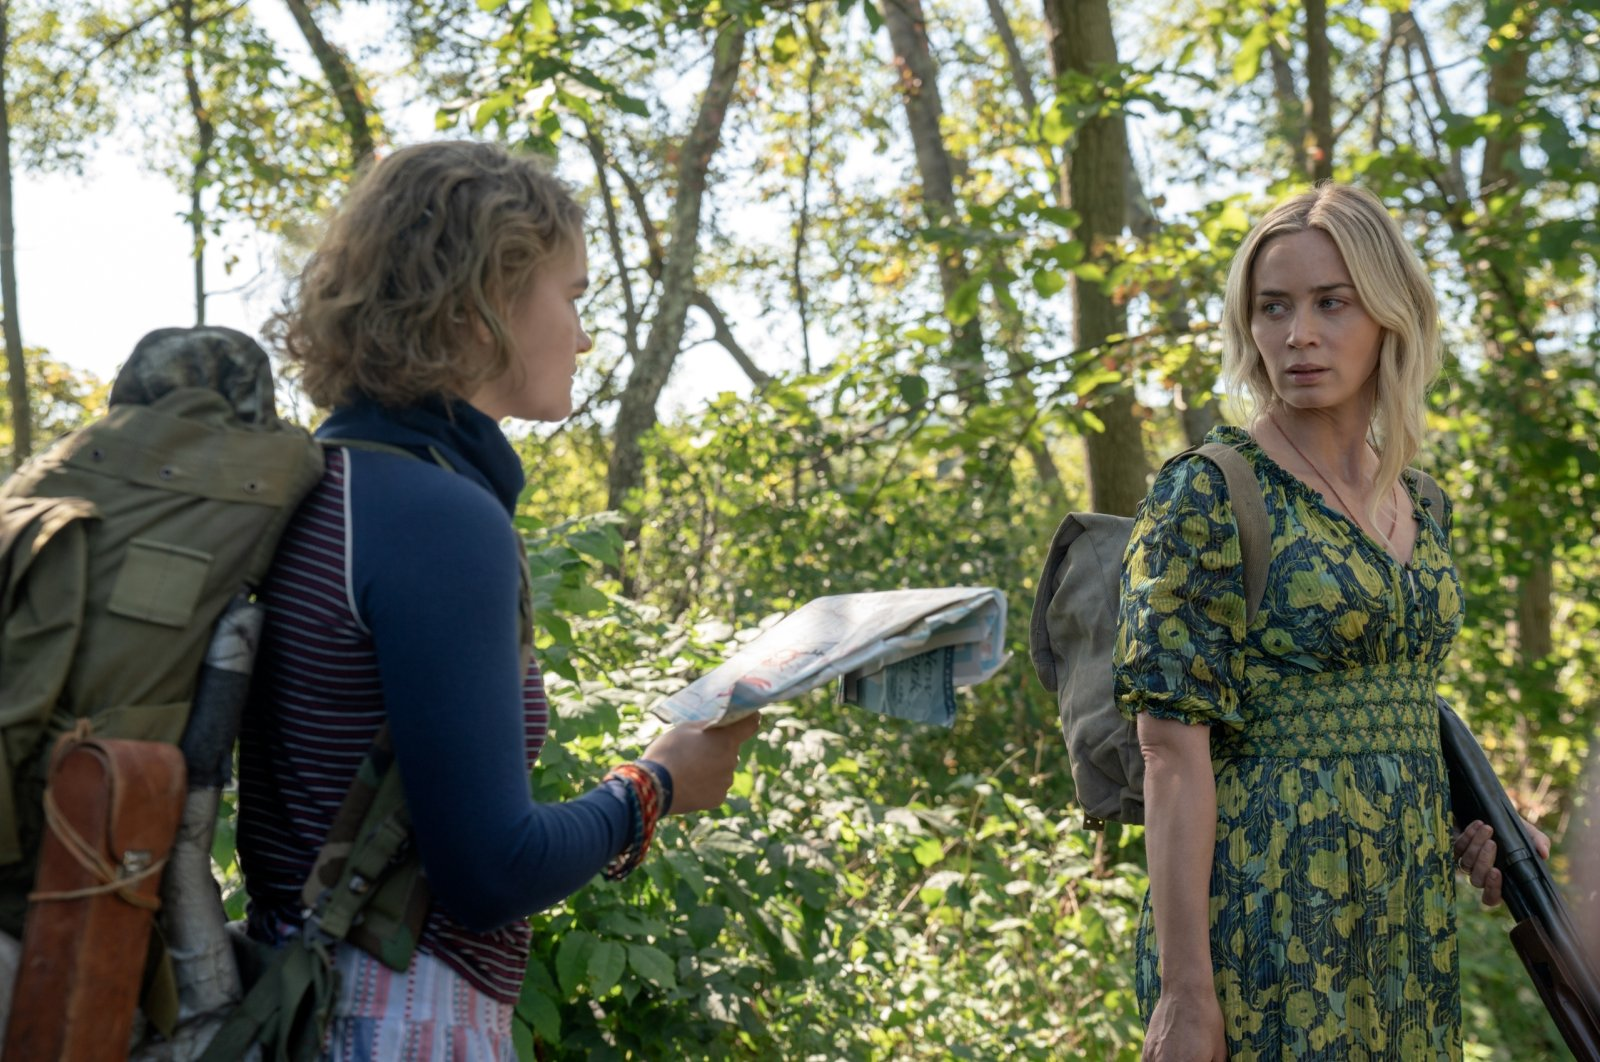 """Millicent Simmonds (L) stars as Regan and Emily Blunt (R) as Evelyn in """"A Quiet Place Part II."""" (DPA Photo)"""